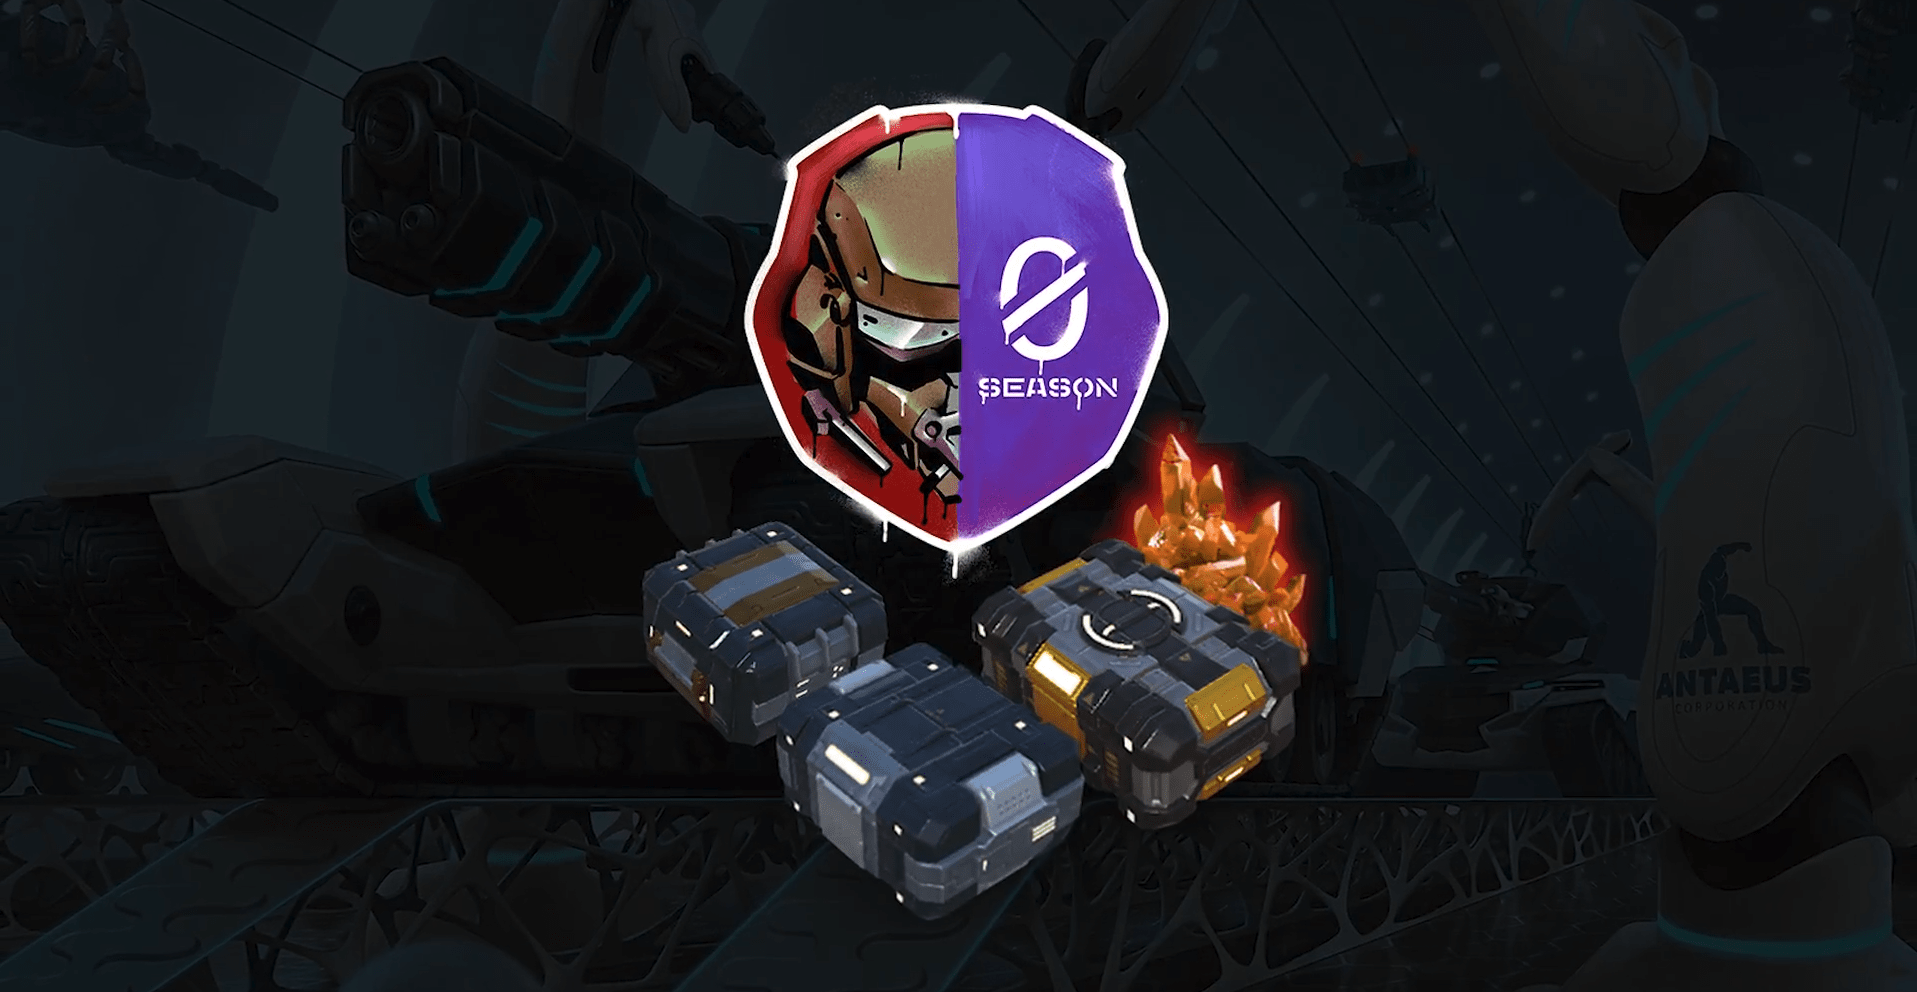 Tanki x developers diary 39 crystals and containers with blueprints the top 50 ranked players of the season were rewarded according to their placing additionally all of them malvernweather Images